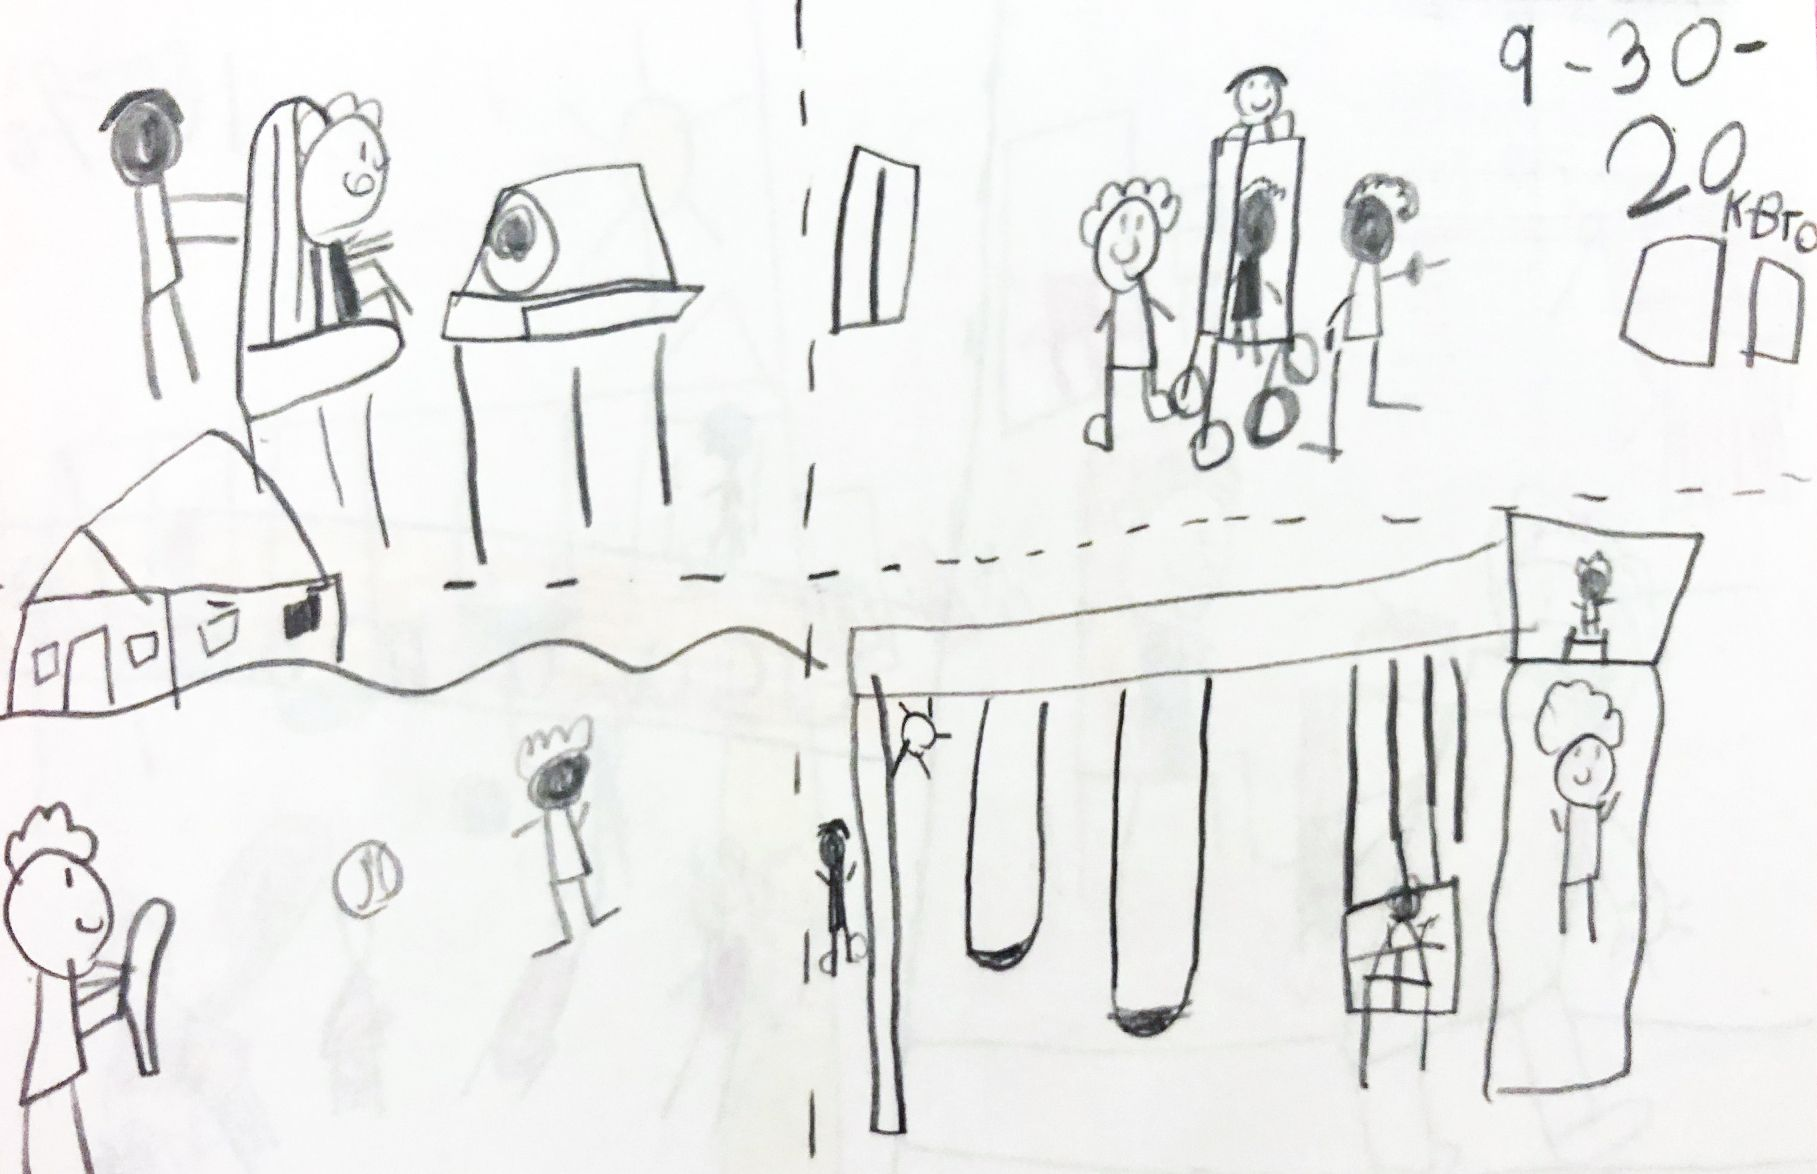 Activities, 2002 (Age 6) Pencil on printer paper. 8.5 by